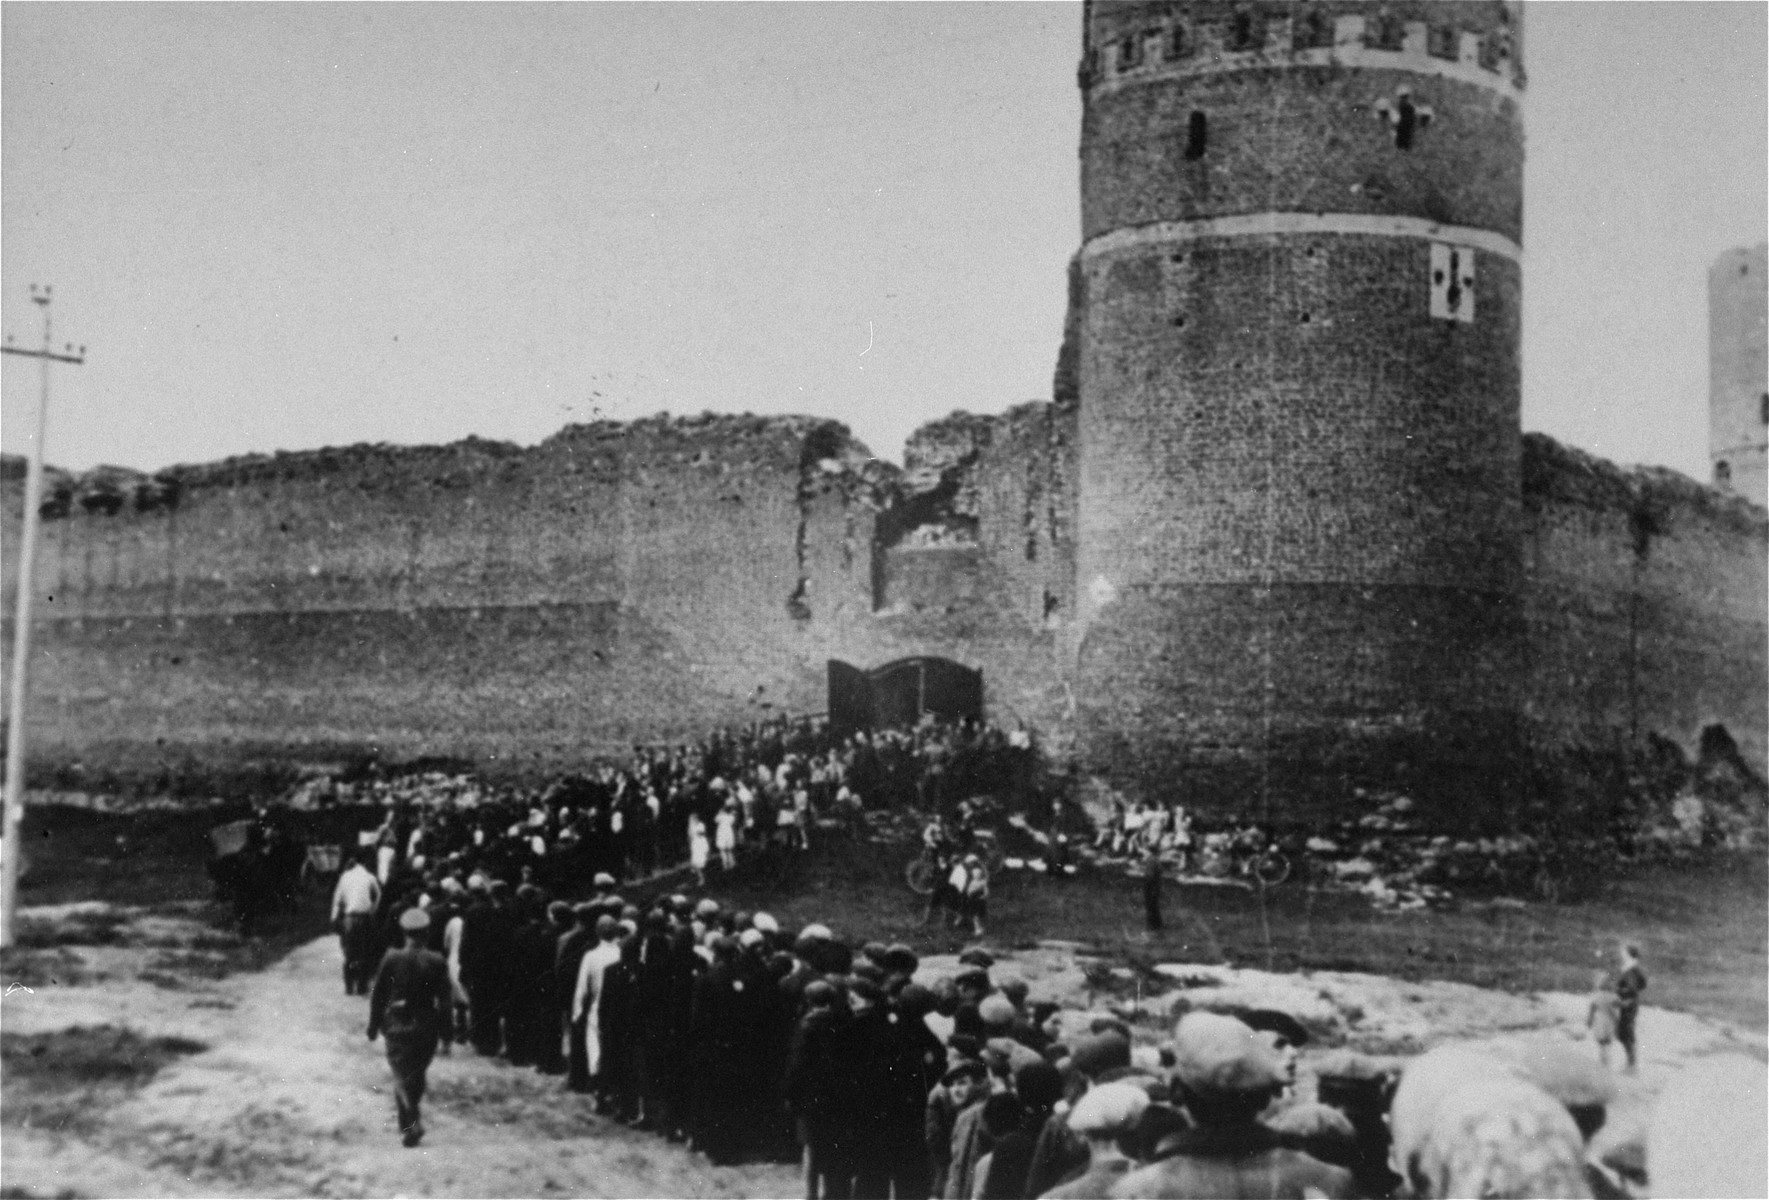 Jews from the Ciechanow ghetto are marched into a fortress.